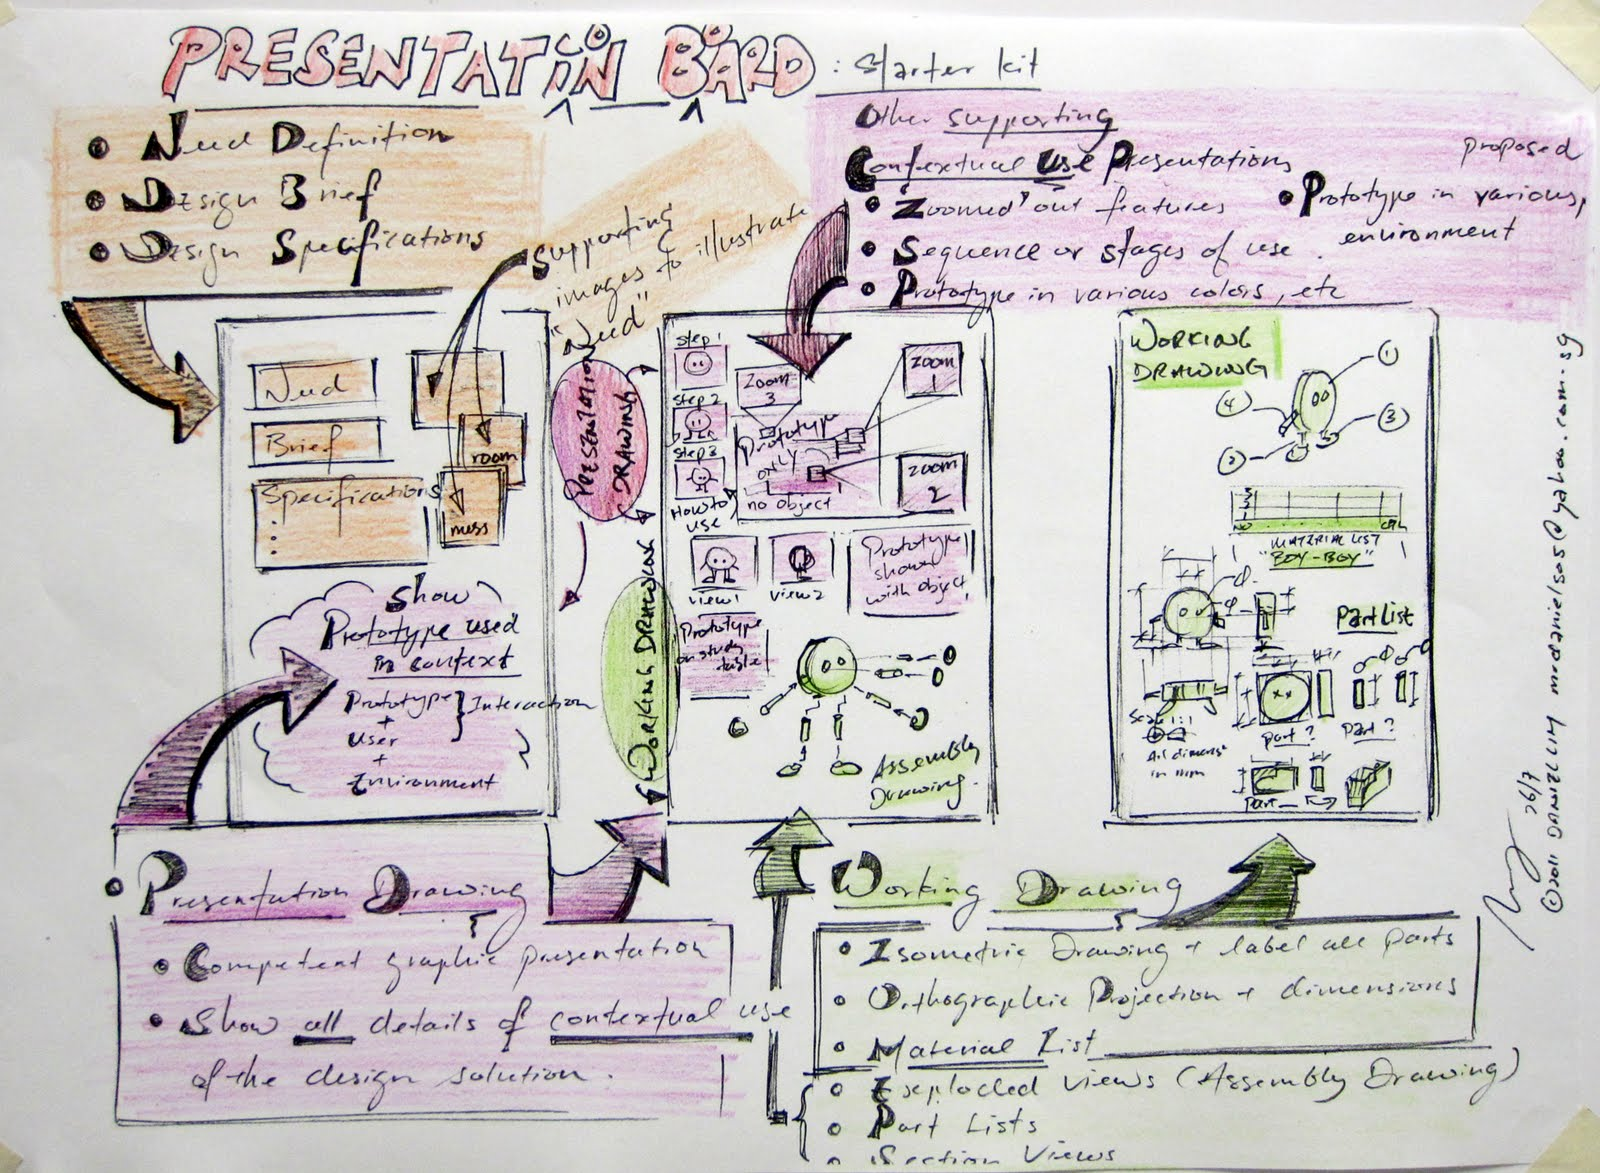 Design Journal SOS Presentation Board Presentation Drawing - Unique design presentation board layout design